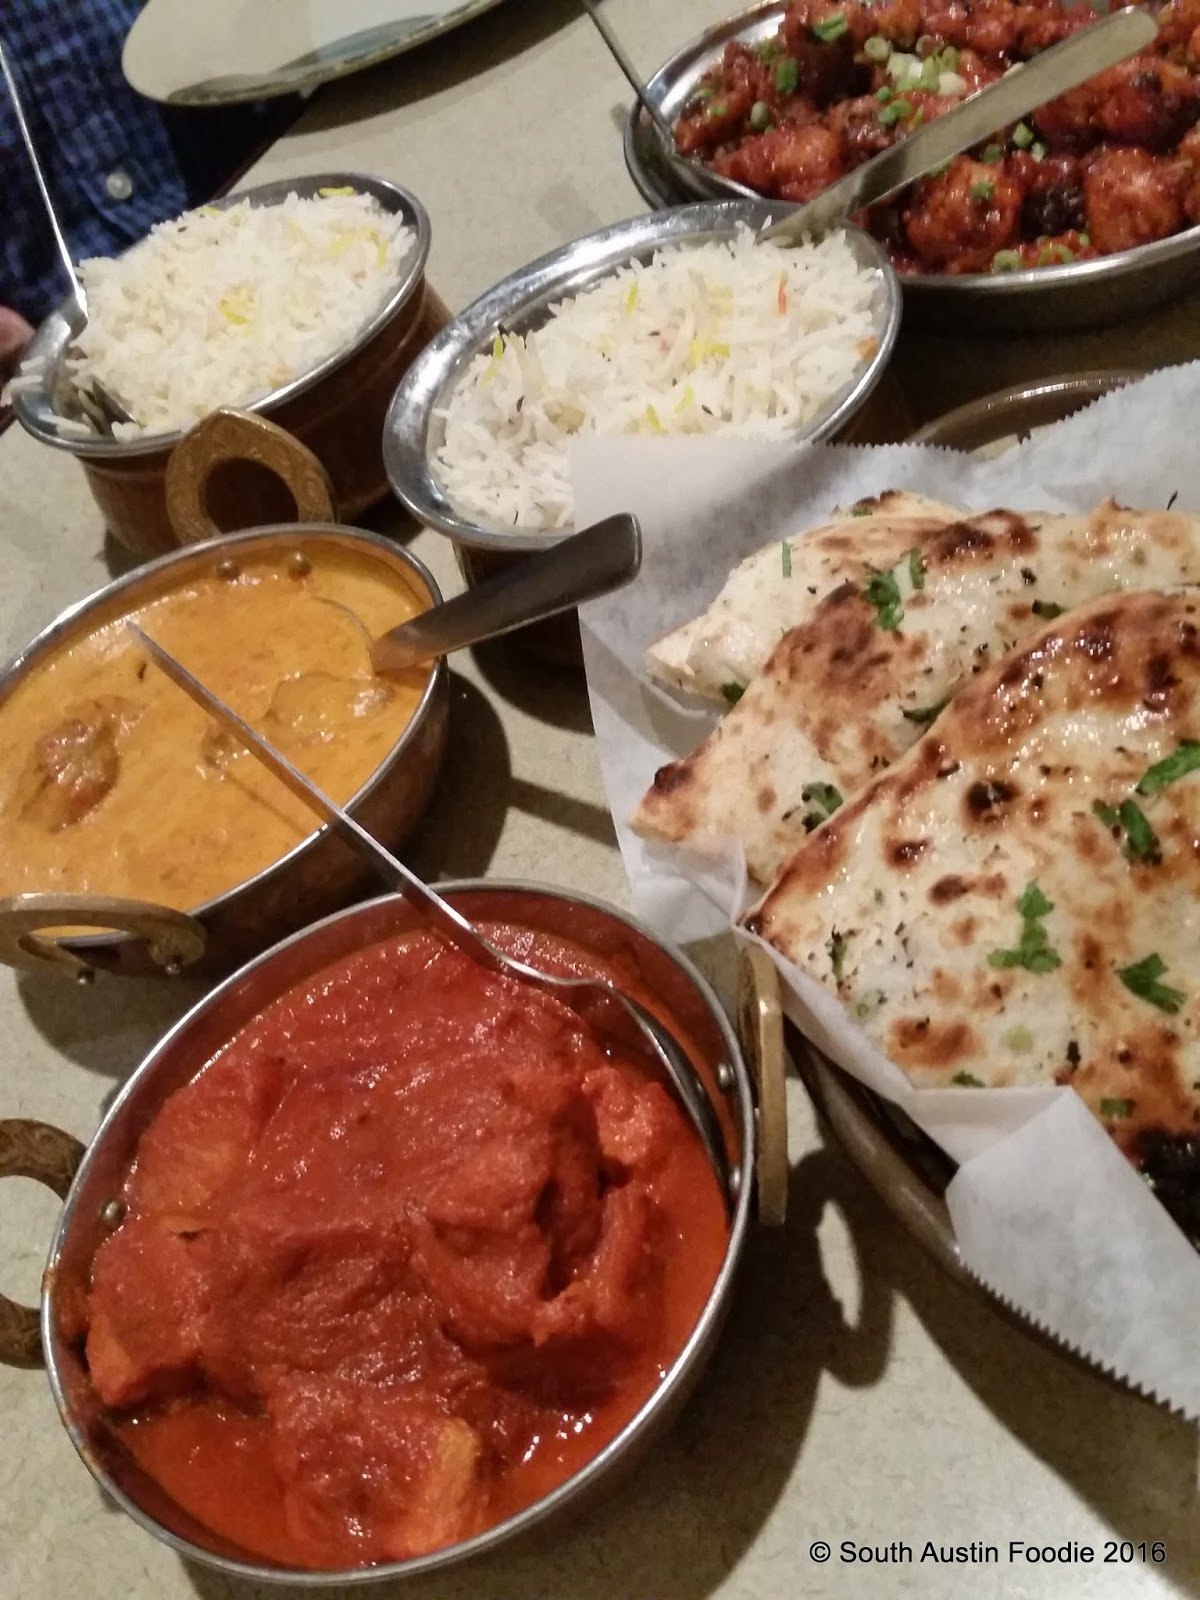 South austin foodie the best restaurants in south austin for Asiana indian cuisine austin tx